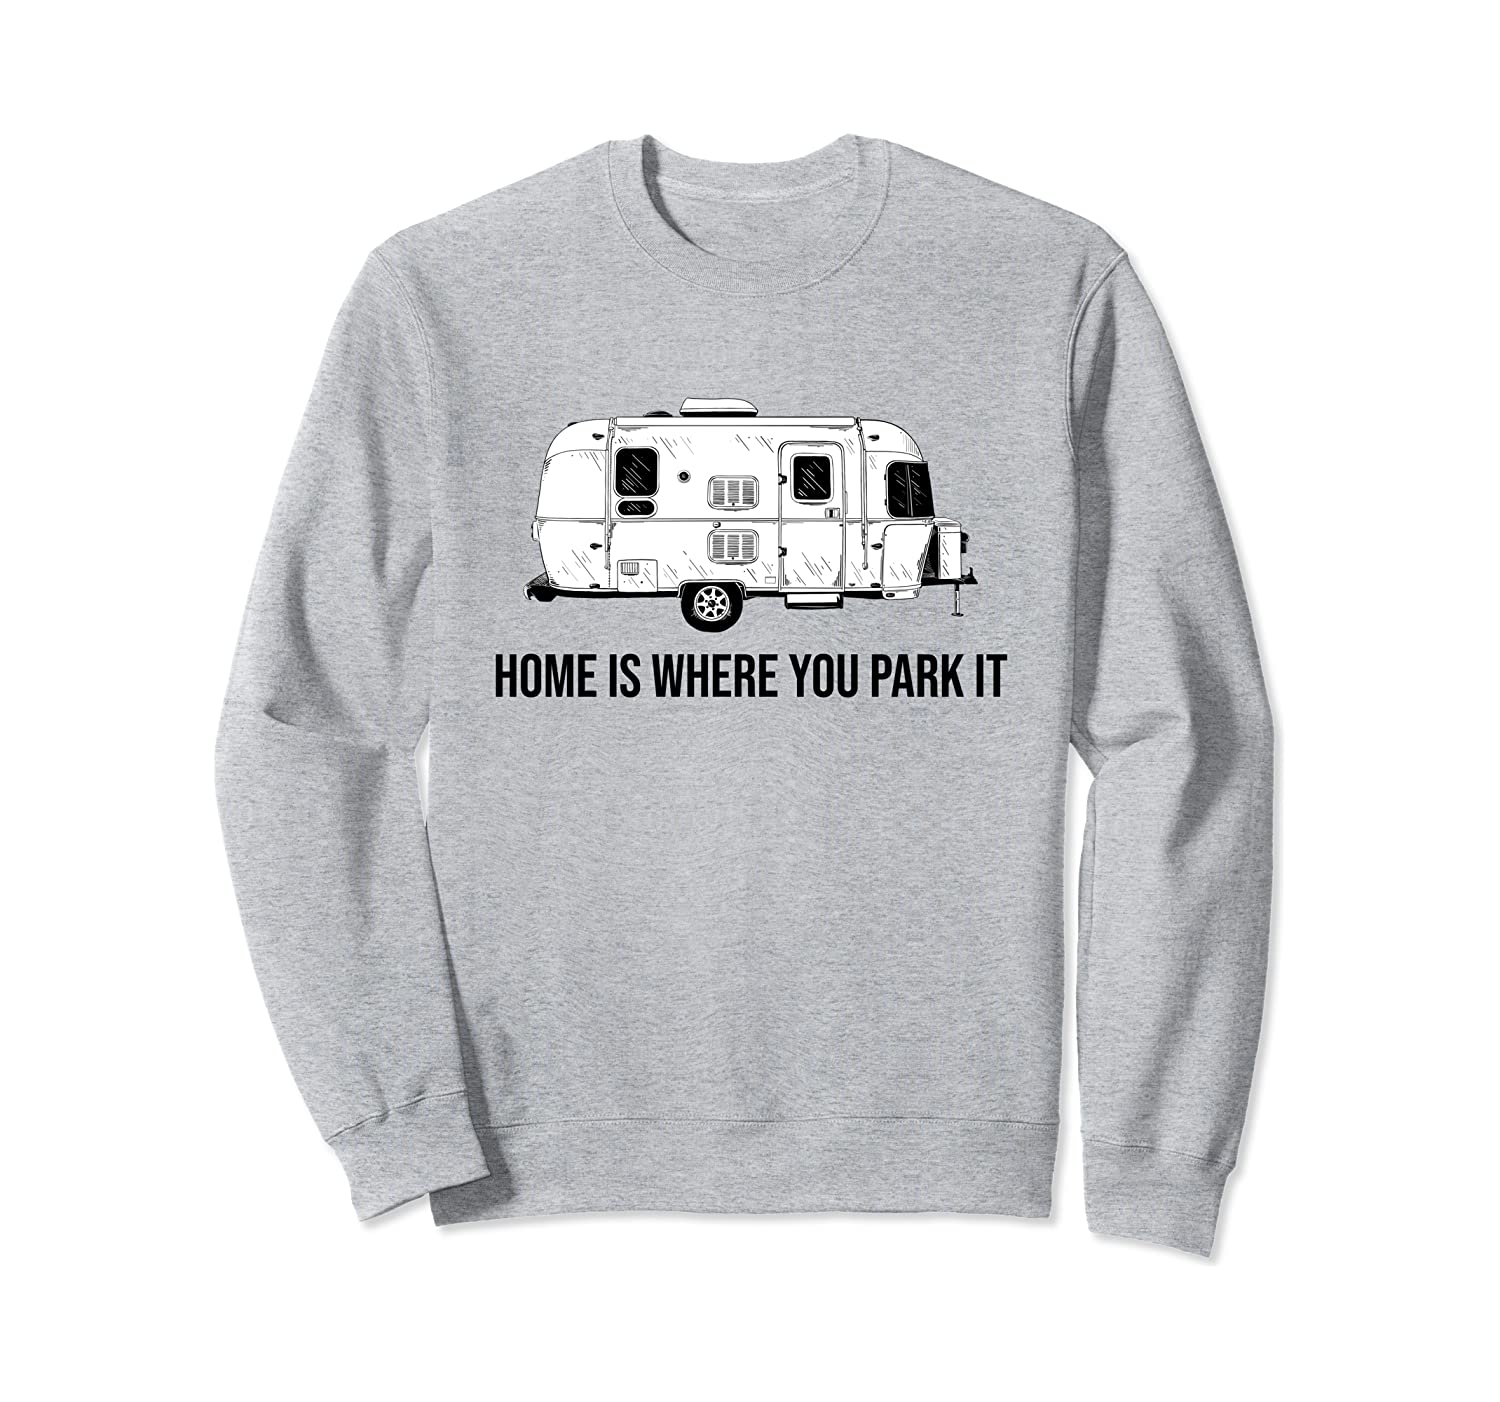 Home is where you park it, RV trailer, Camping, Funny RV Sweatshirt